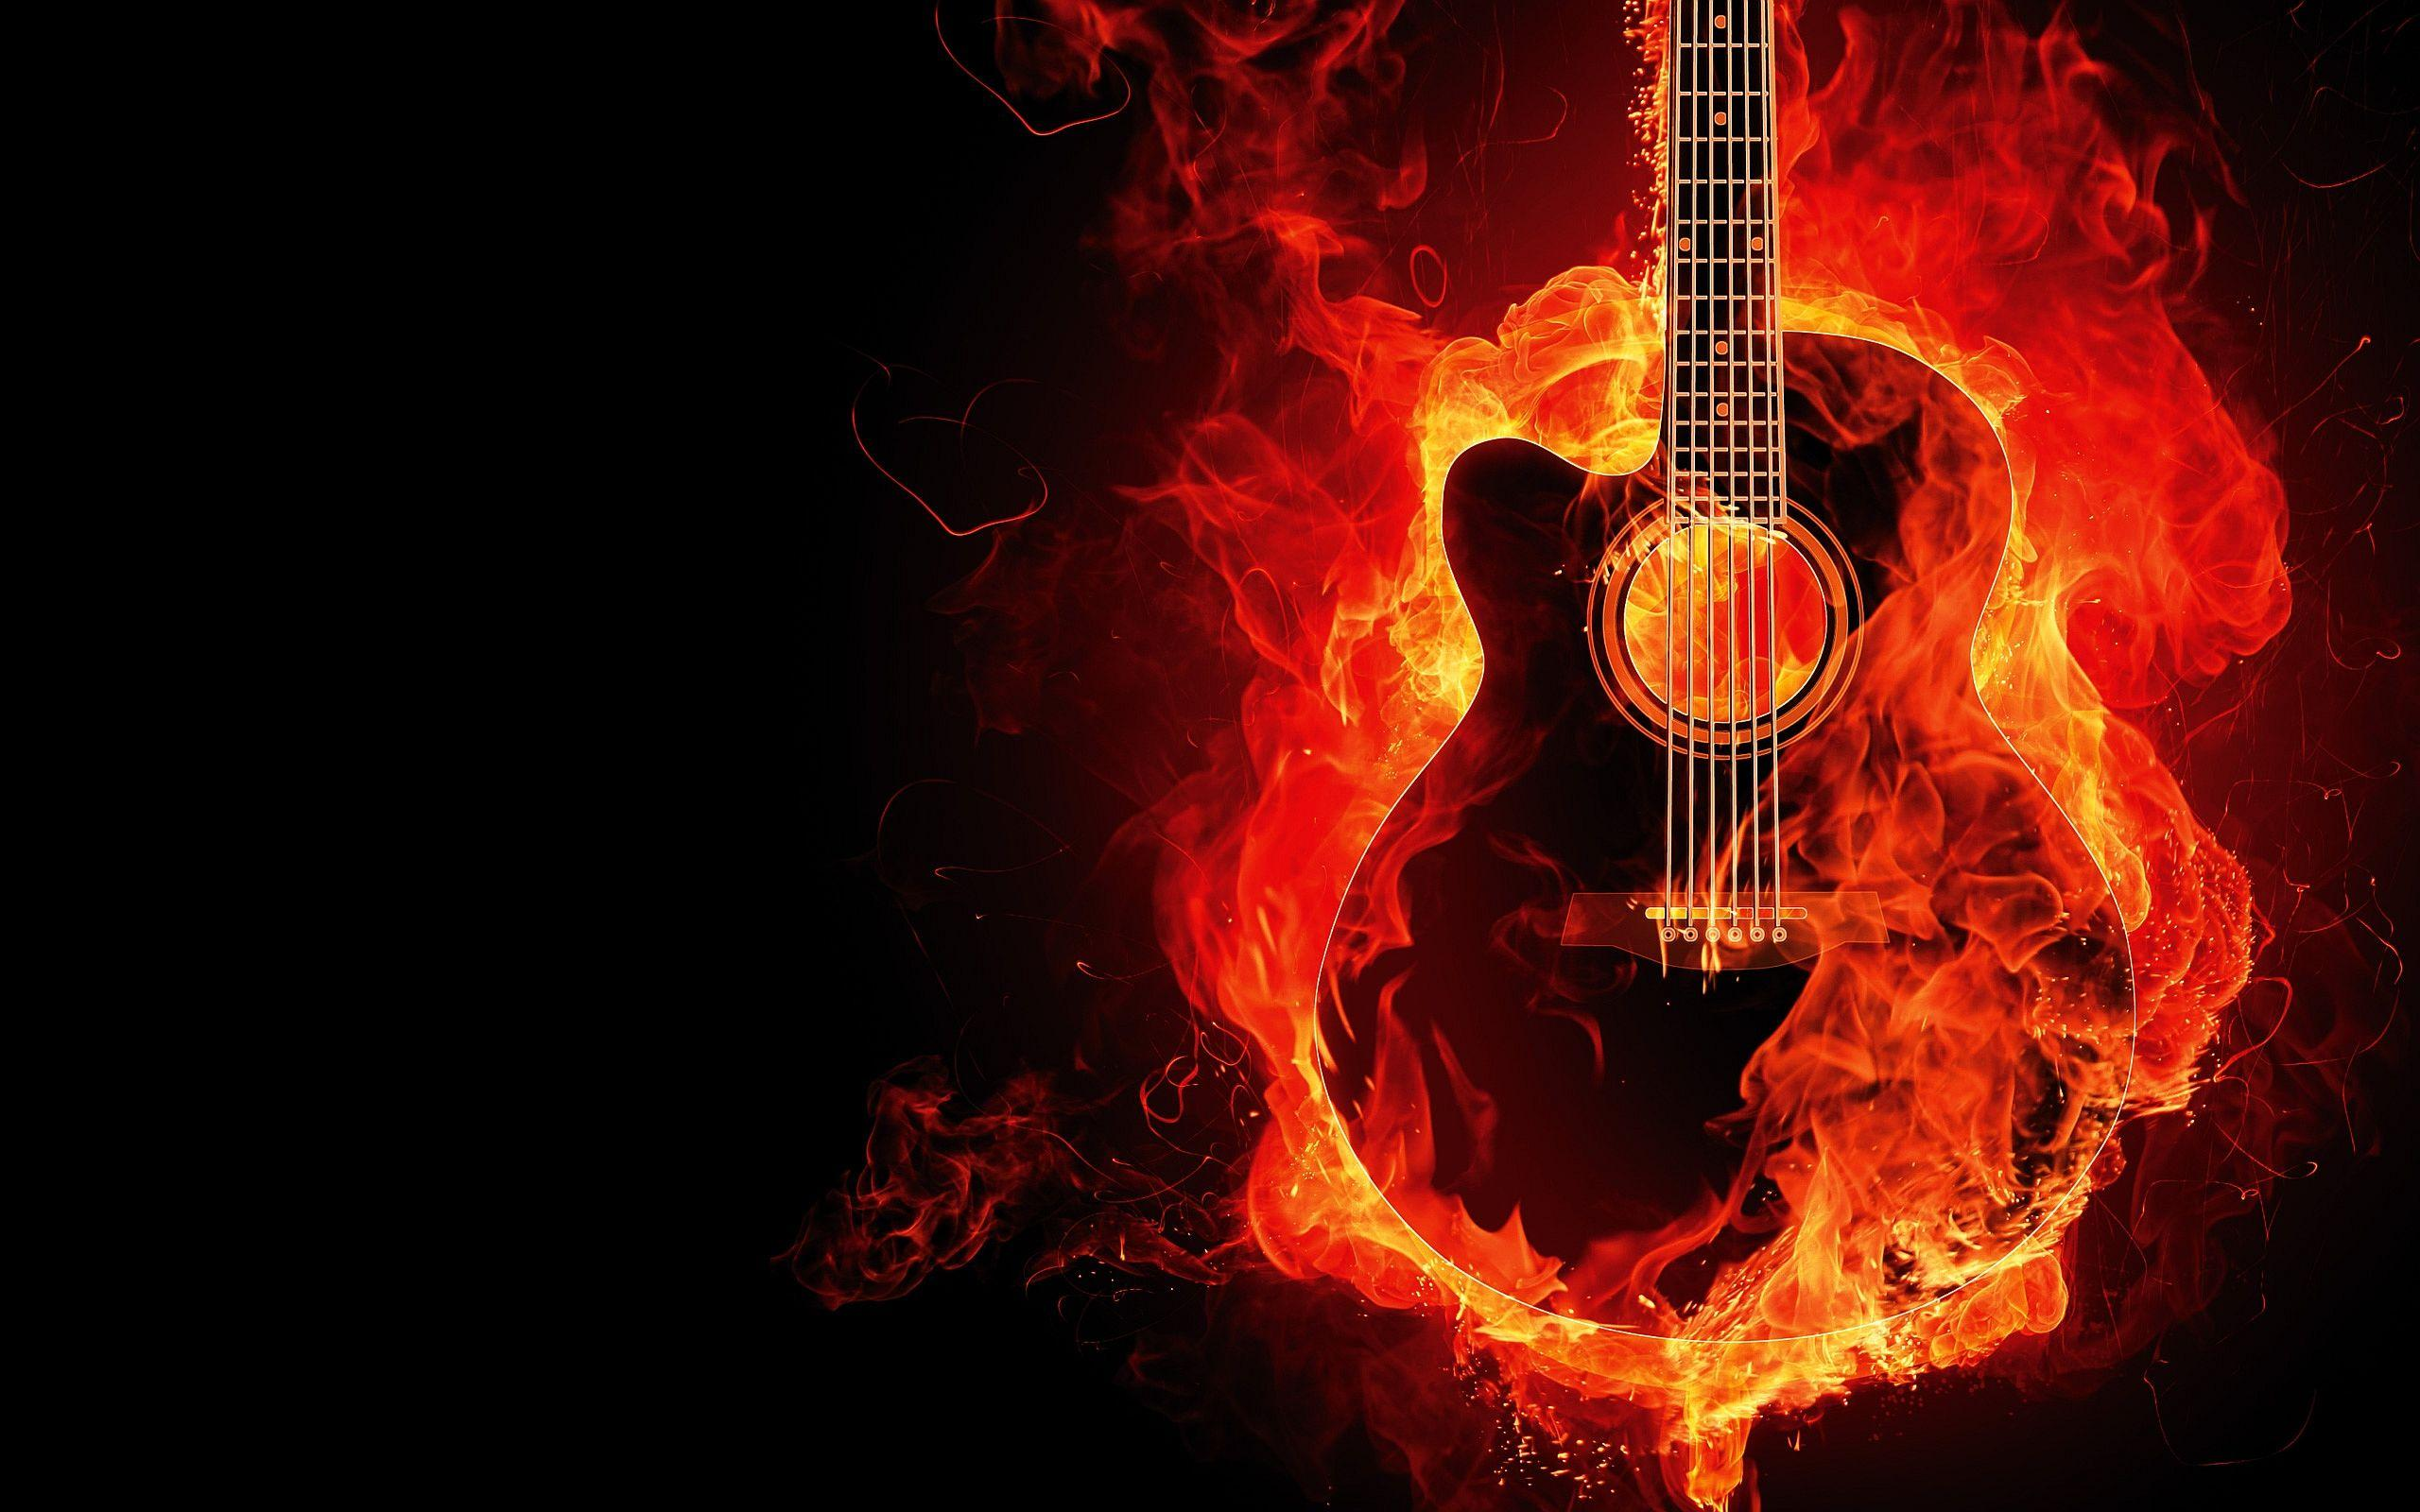 fire background images